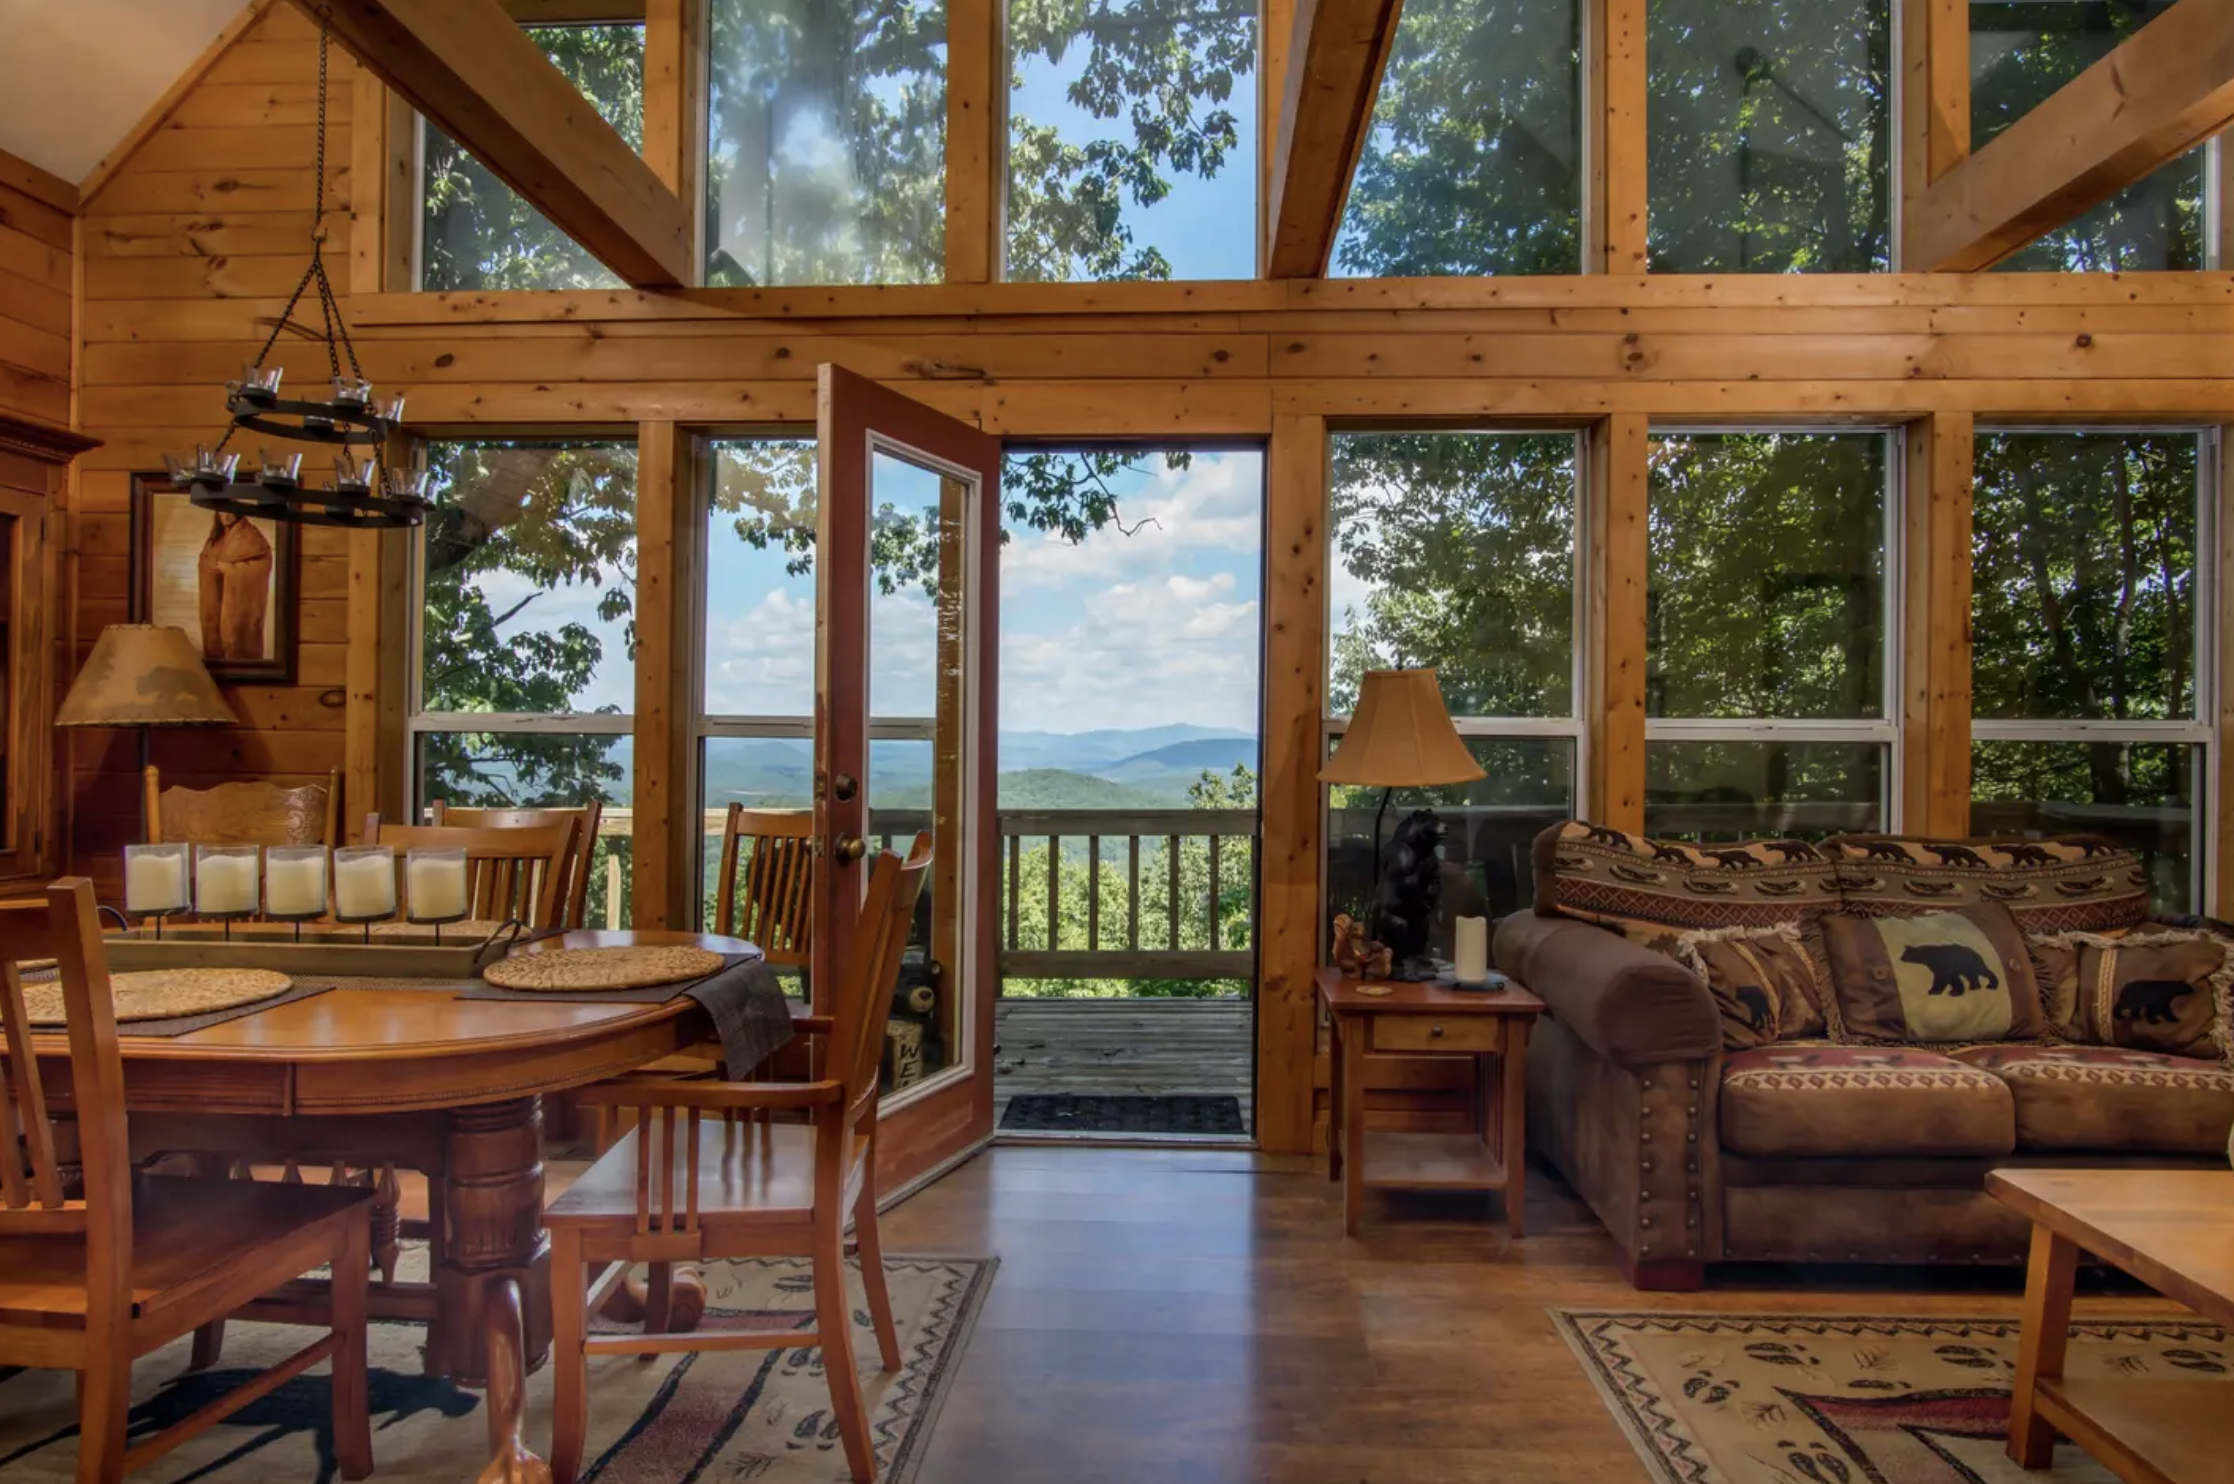 Mountain views from the floor-to-ceiling windows of a cabin living room with couch, table and chairs.